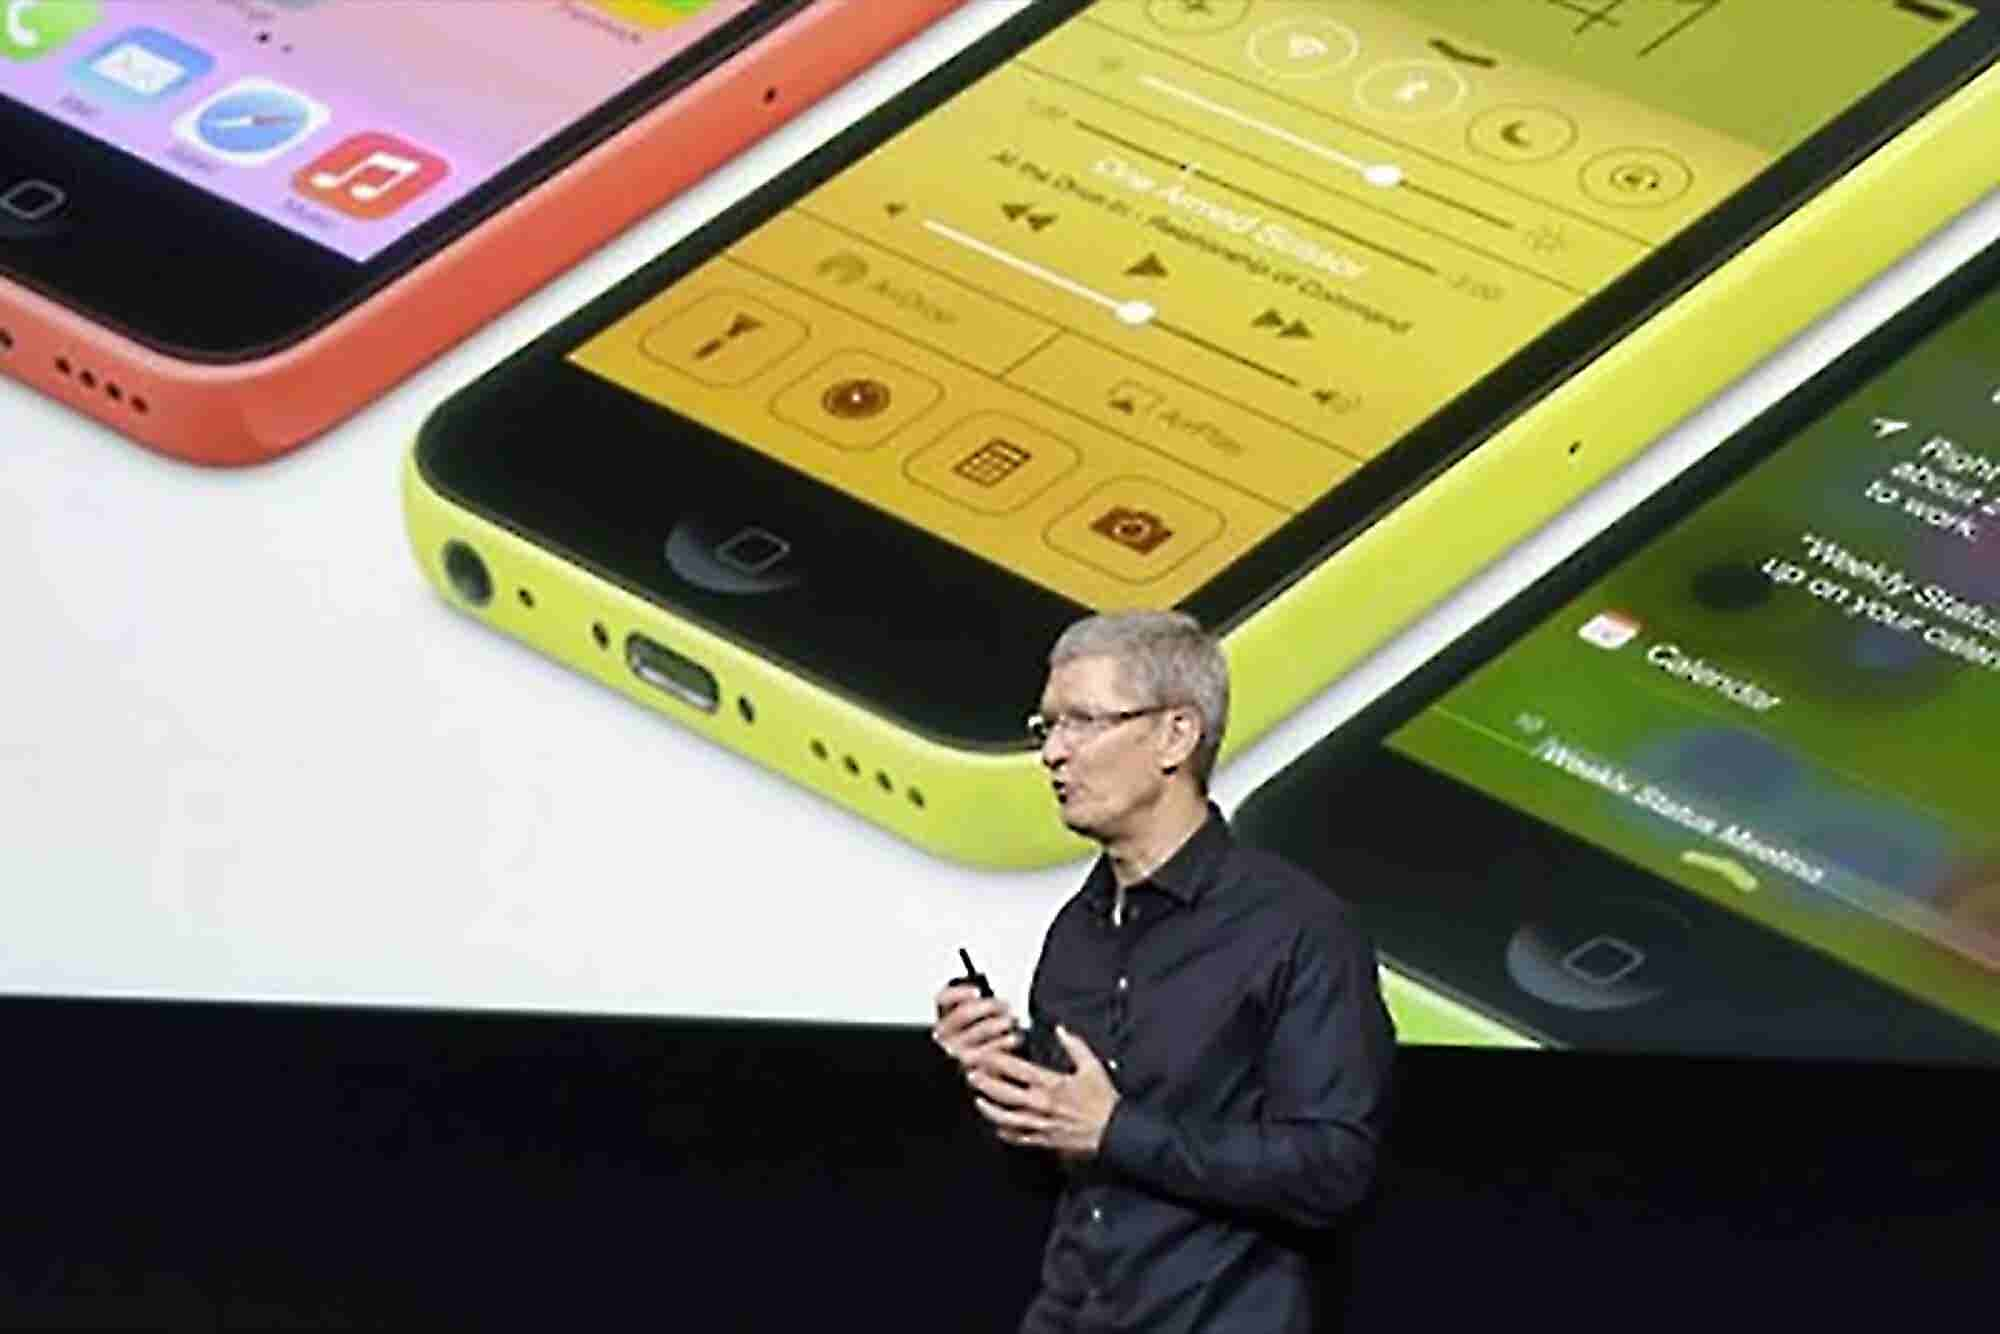 Apple Stock Prices Fall On News of the Expensive iPhone 5C